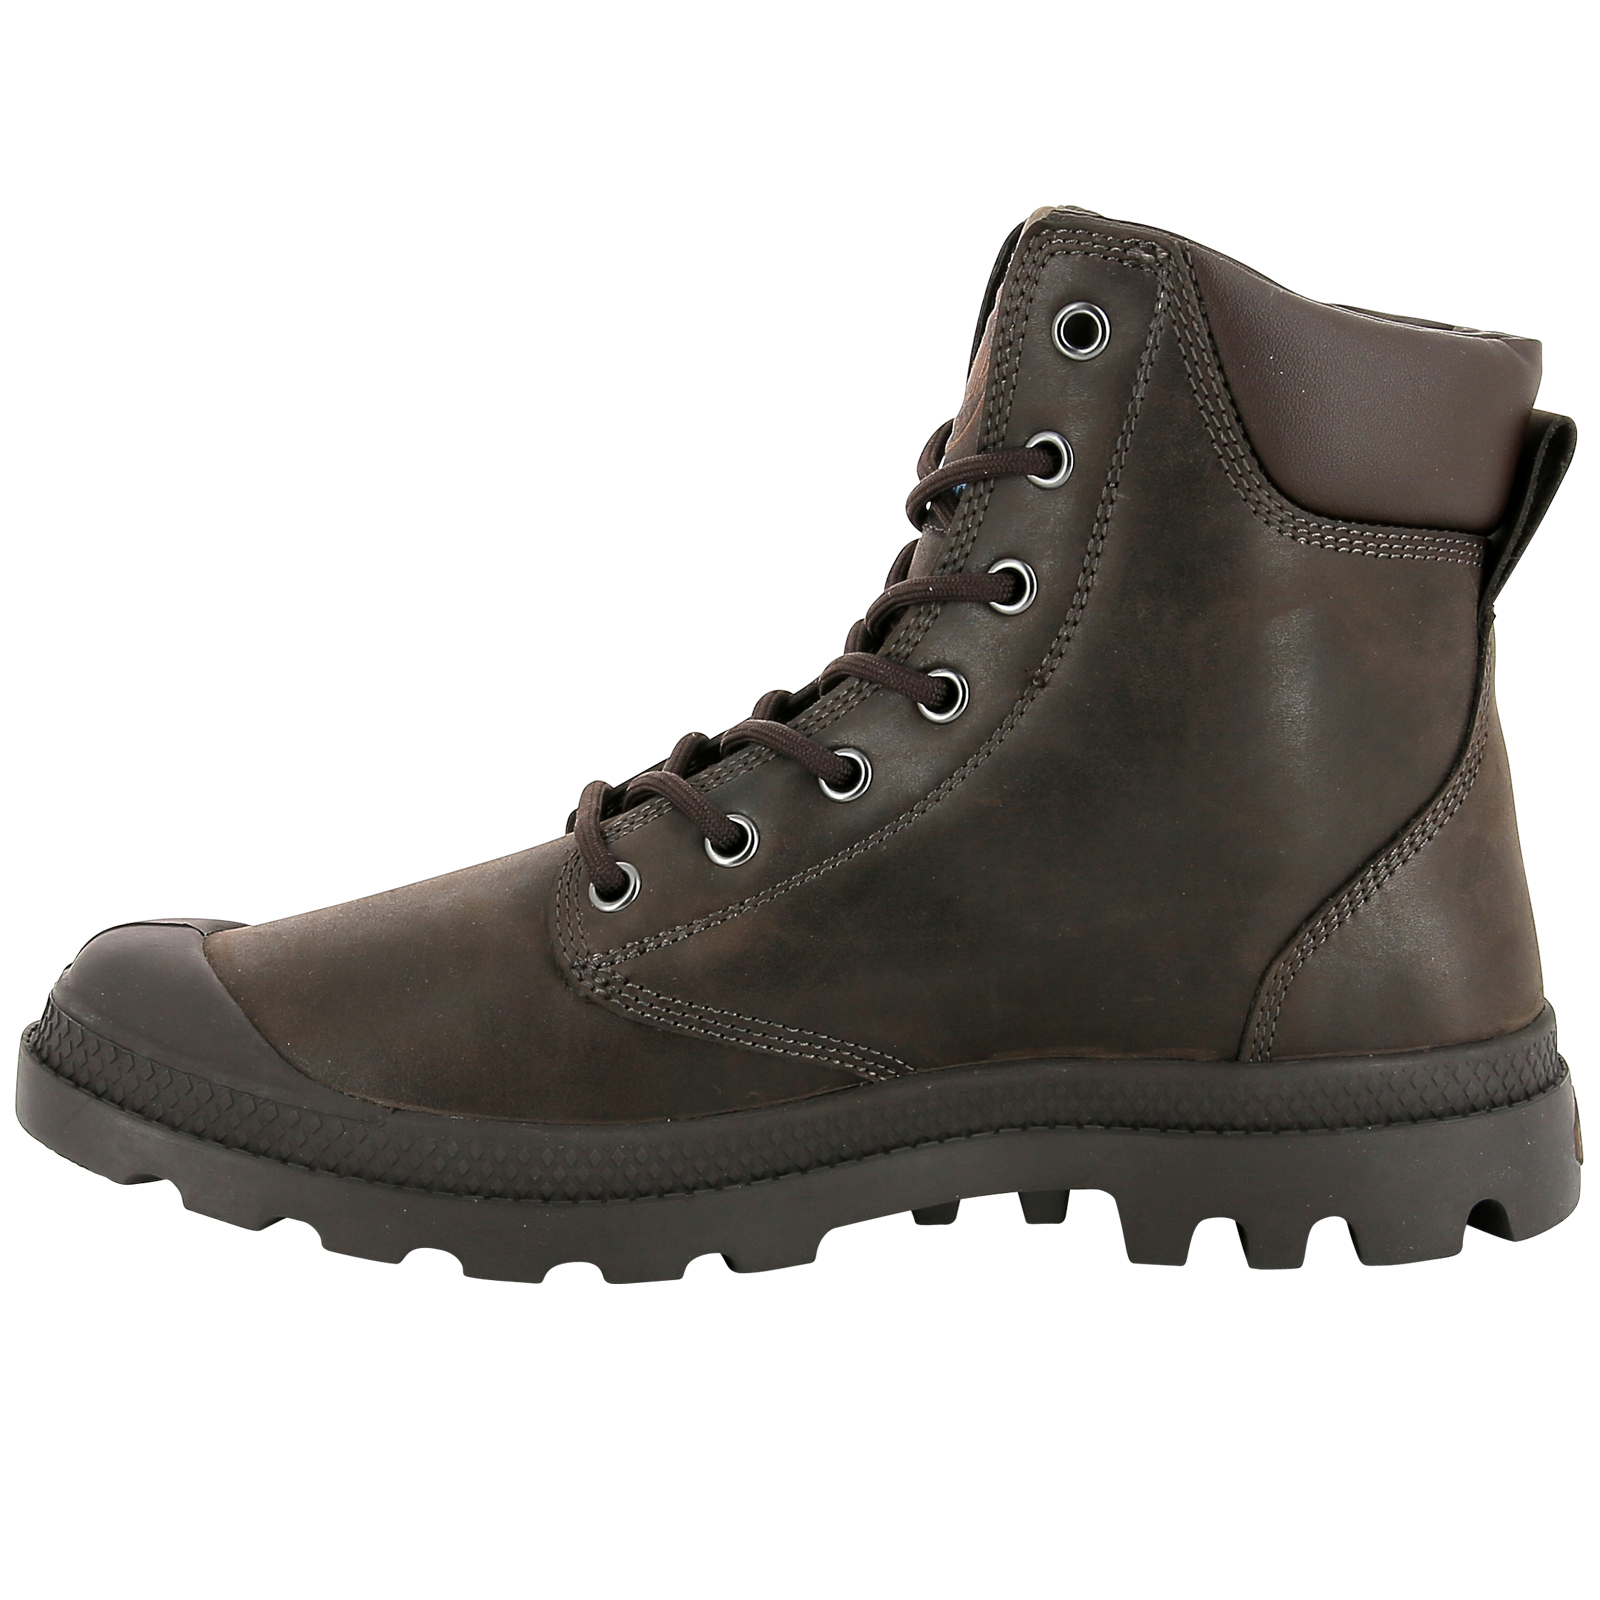 Palladium-Mens-Pampa-Cuff-Lux-Designer-Waterproof-Leather-Walking-Boots-Shoes thumbnail 14